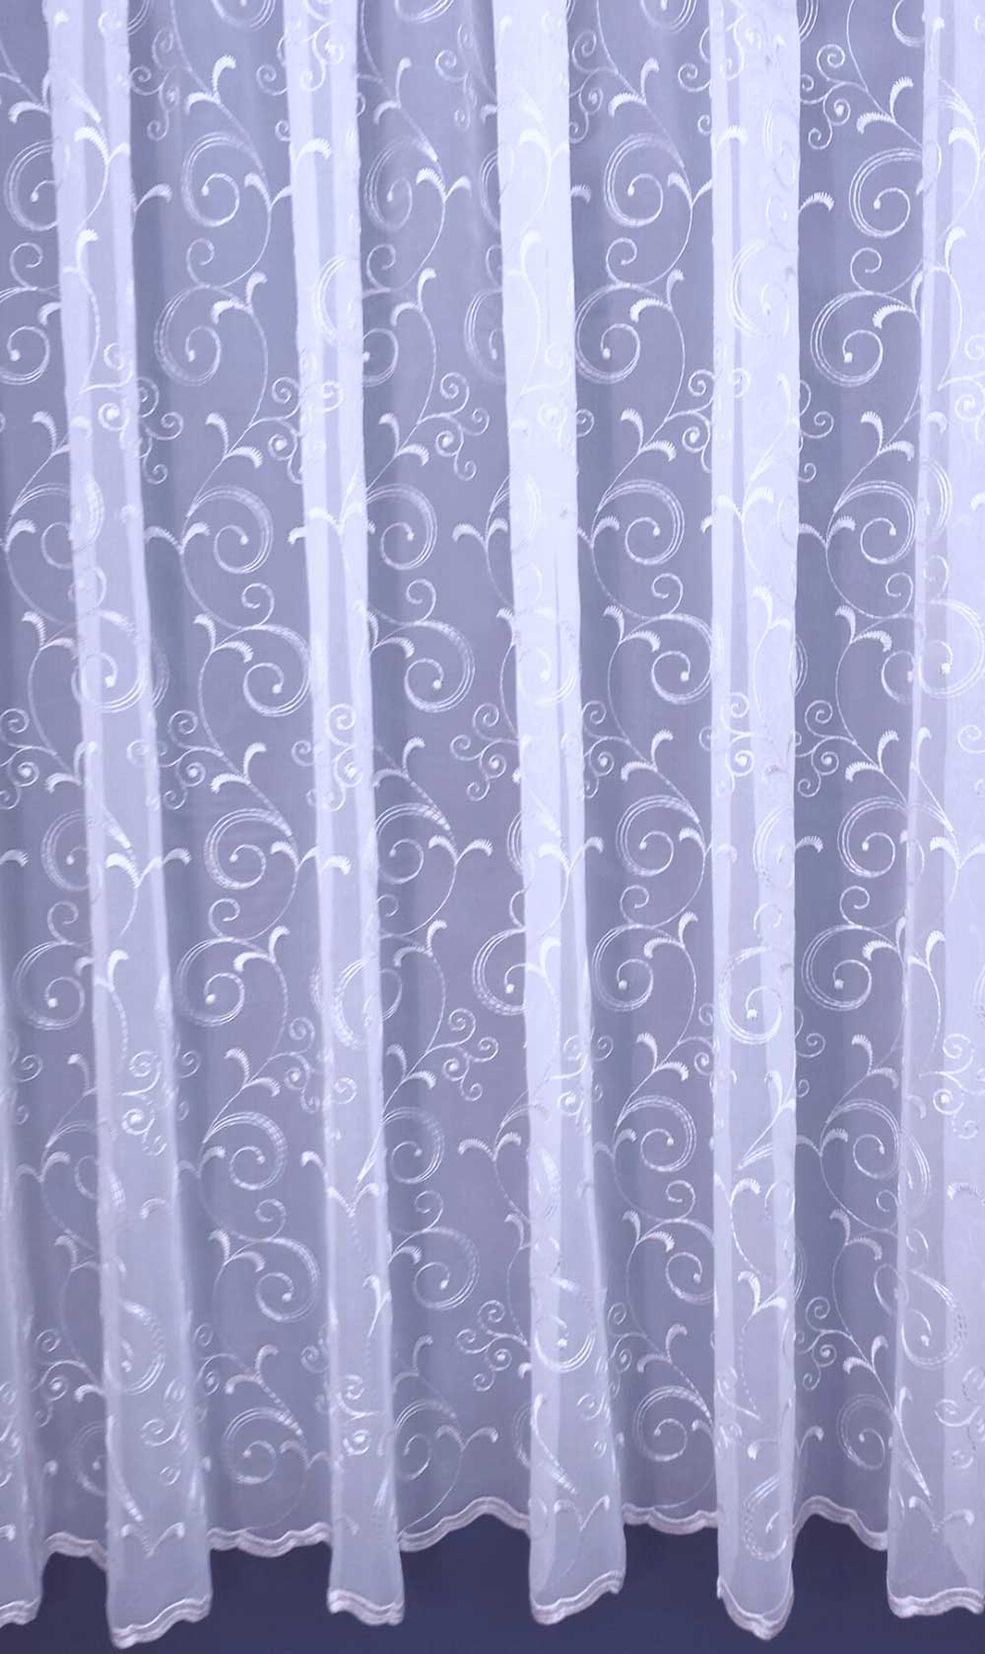 Voile curtain panel brown cheap green curtain voile uk delivery - Avi S Net Curtains Is The Best Place On The Net For Net Curtains Lace Voiles Jardinieres Caf Nets And Side Curtains